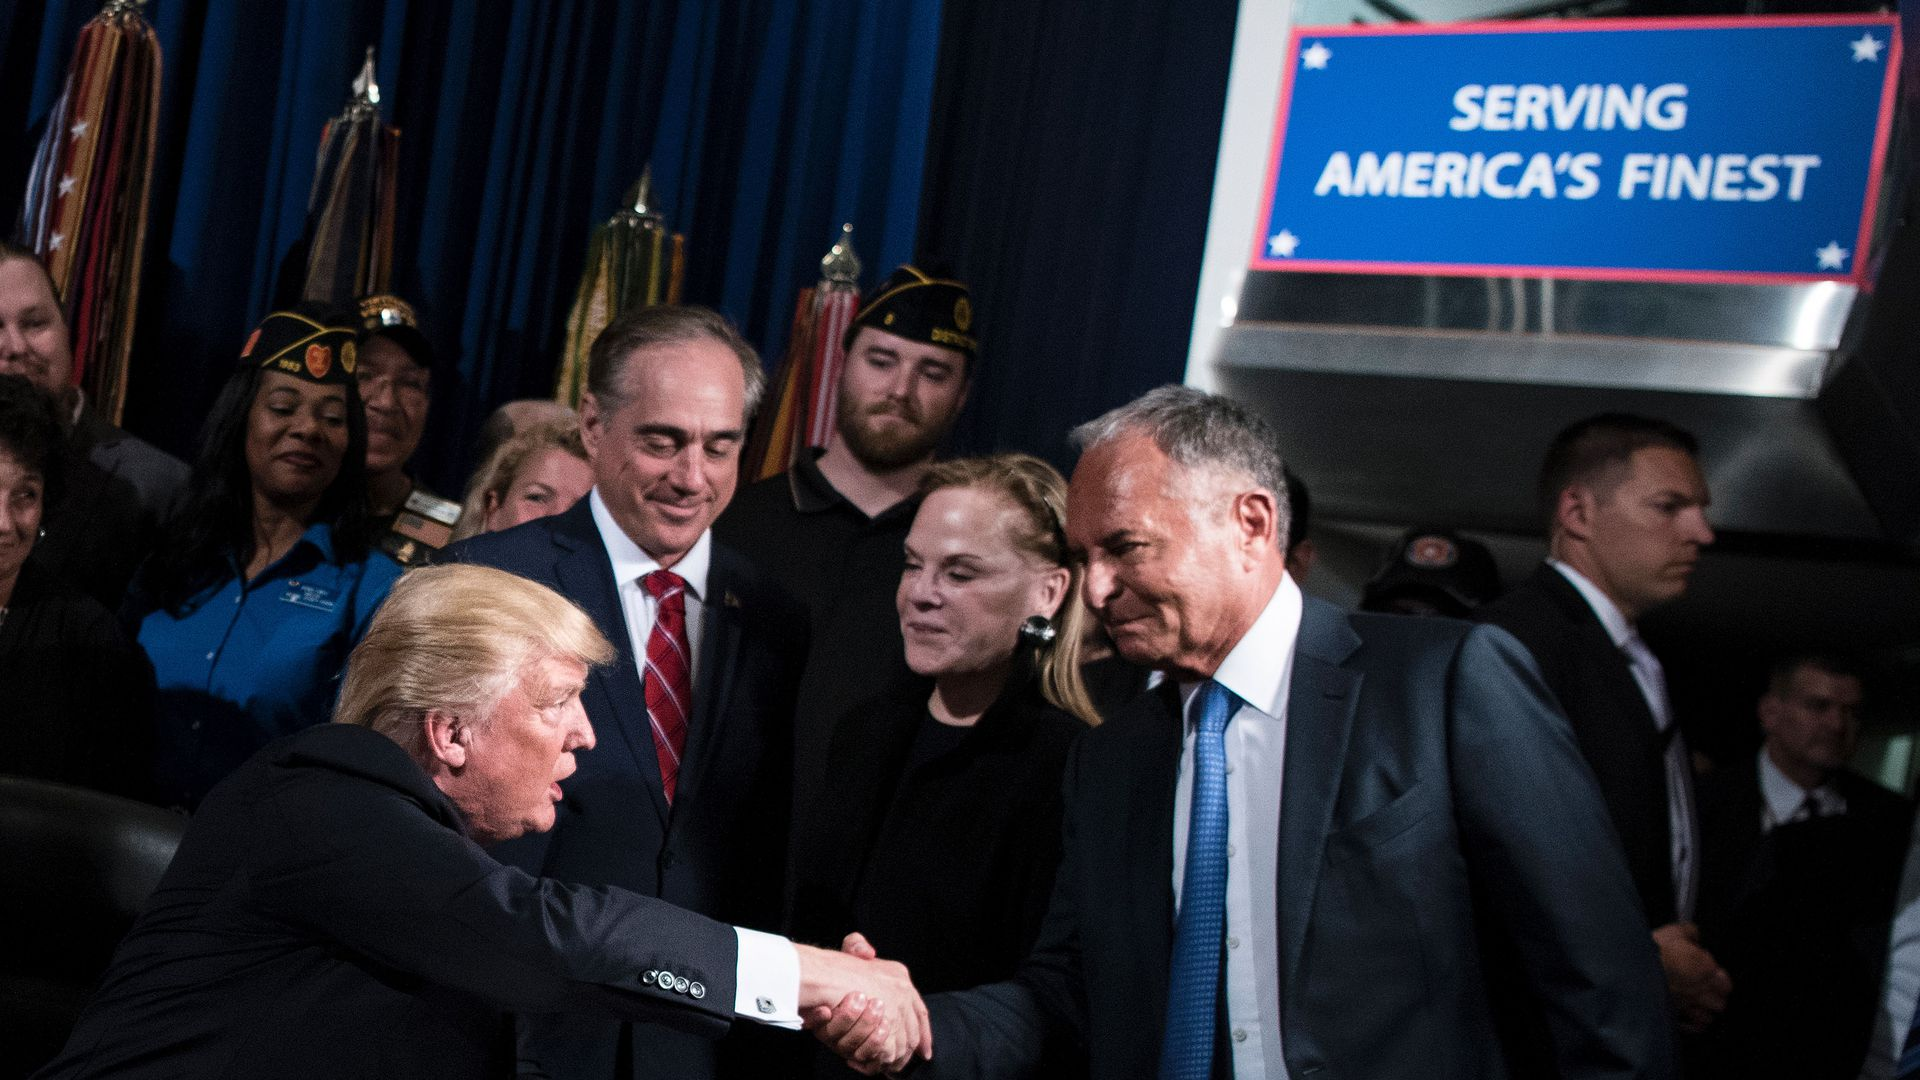 Trump shaking hands with Ike Perlmutter with David Shulkin looking on